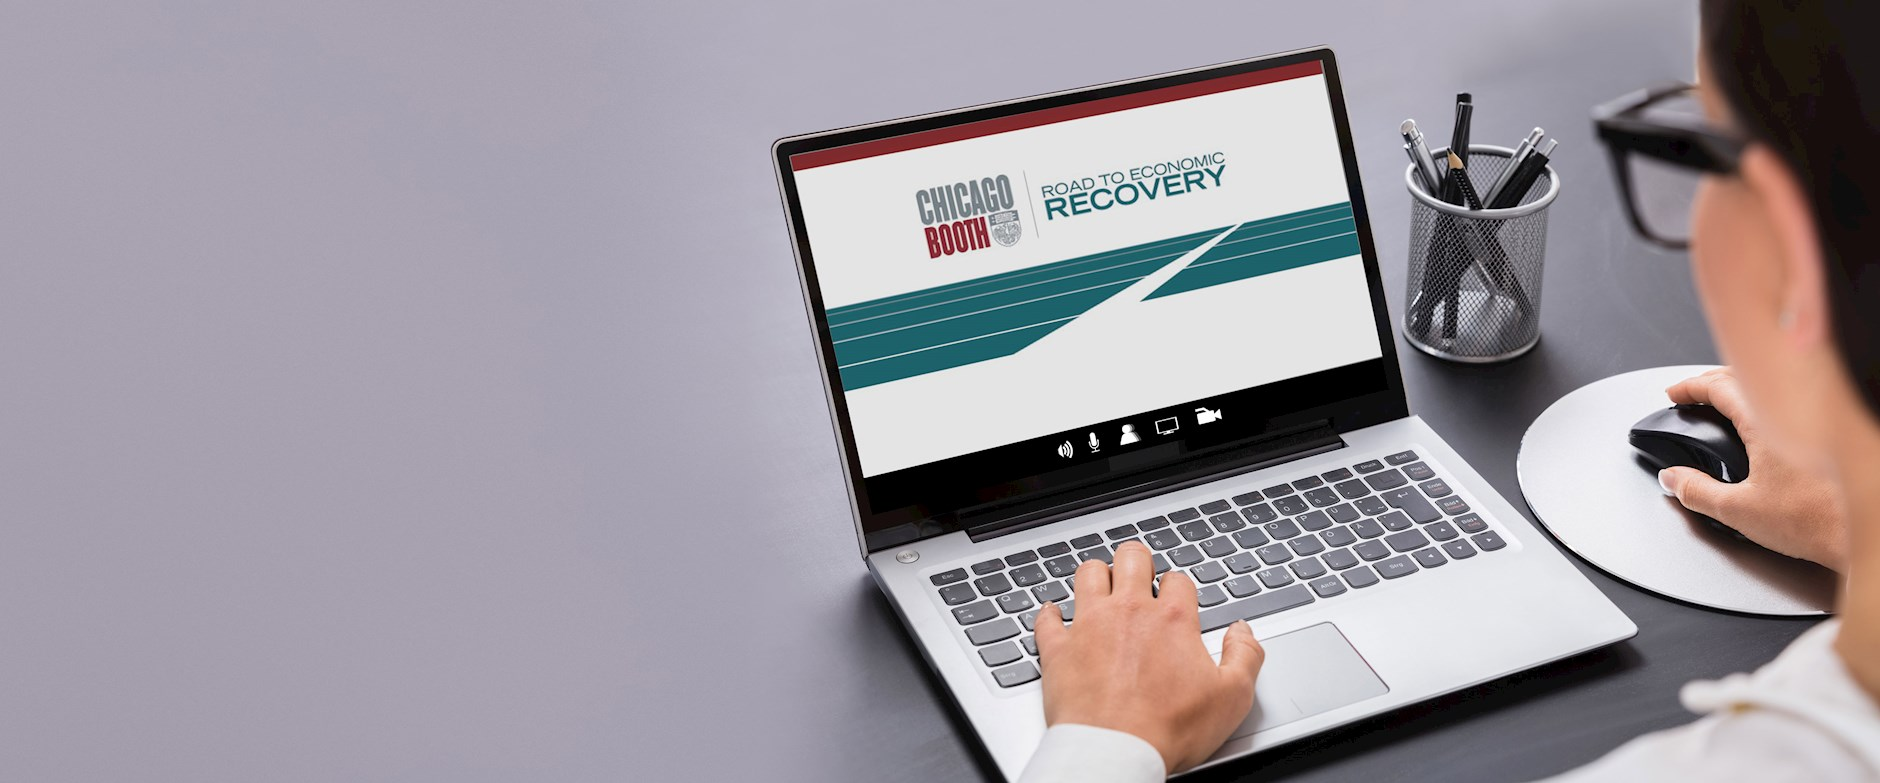 Person on computer looking at Road to Economic Recovery screen